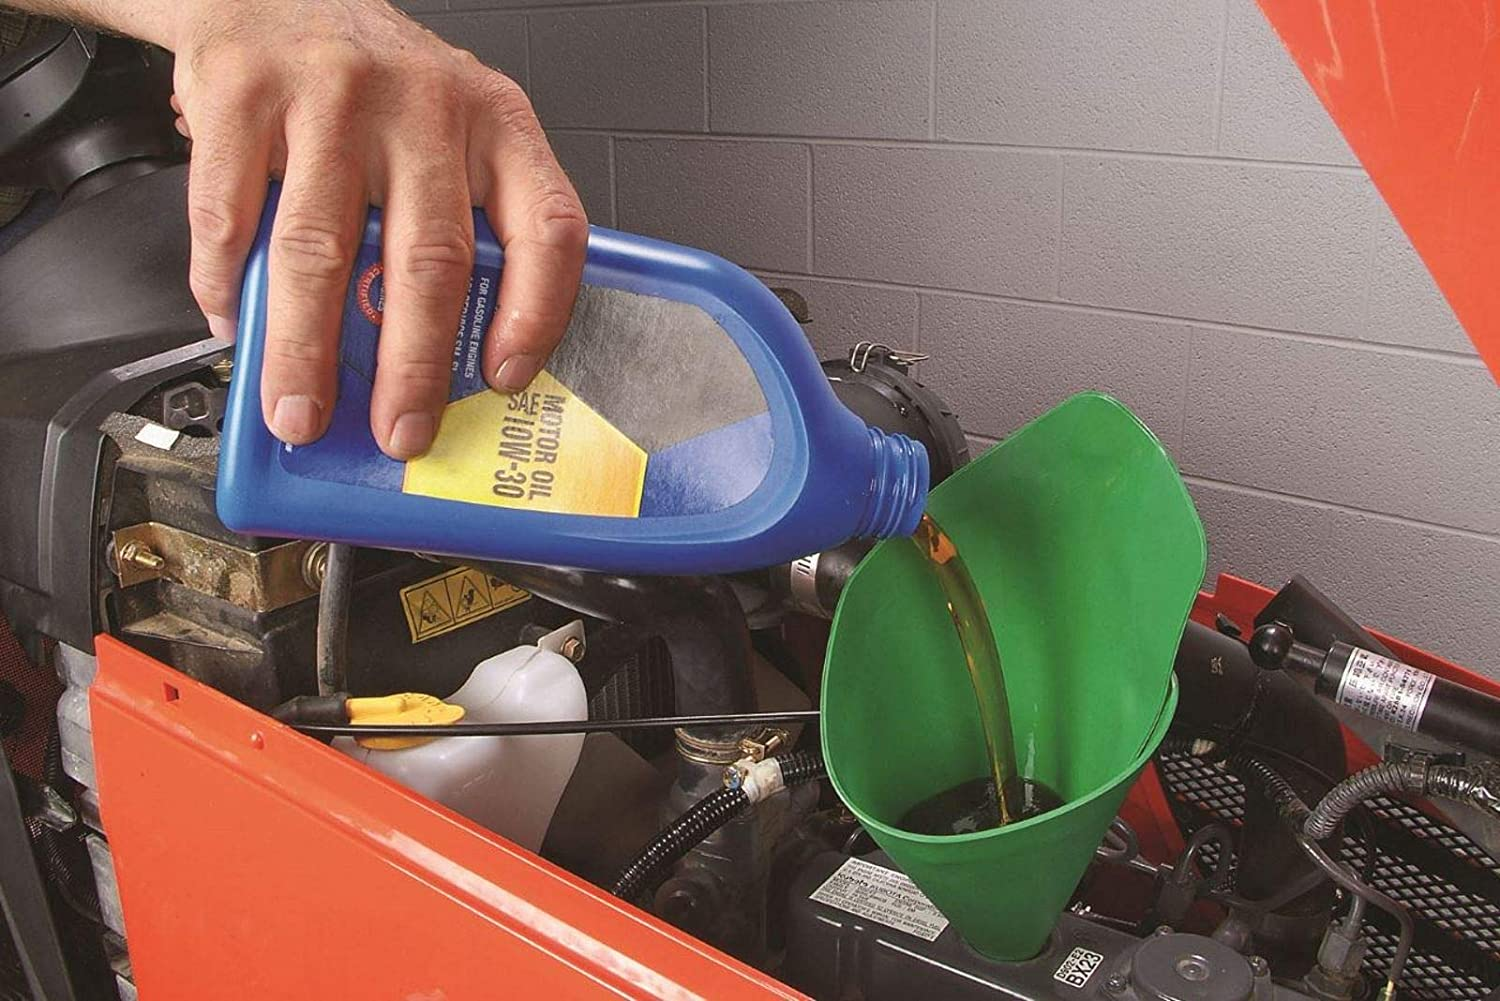 General Purpose FORM-A-FUNNEL Flexible Draining Tool